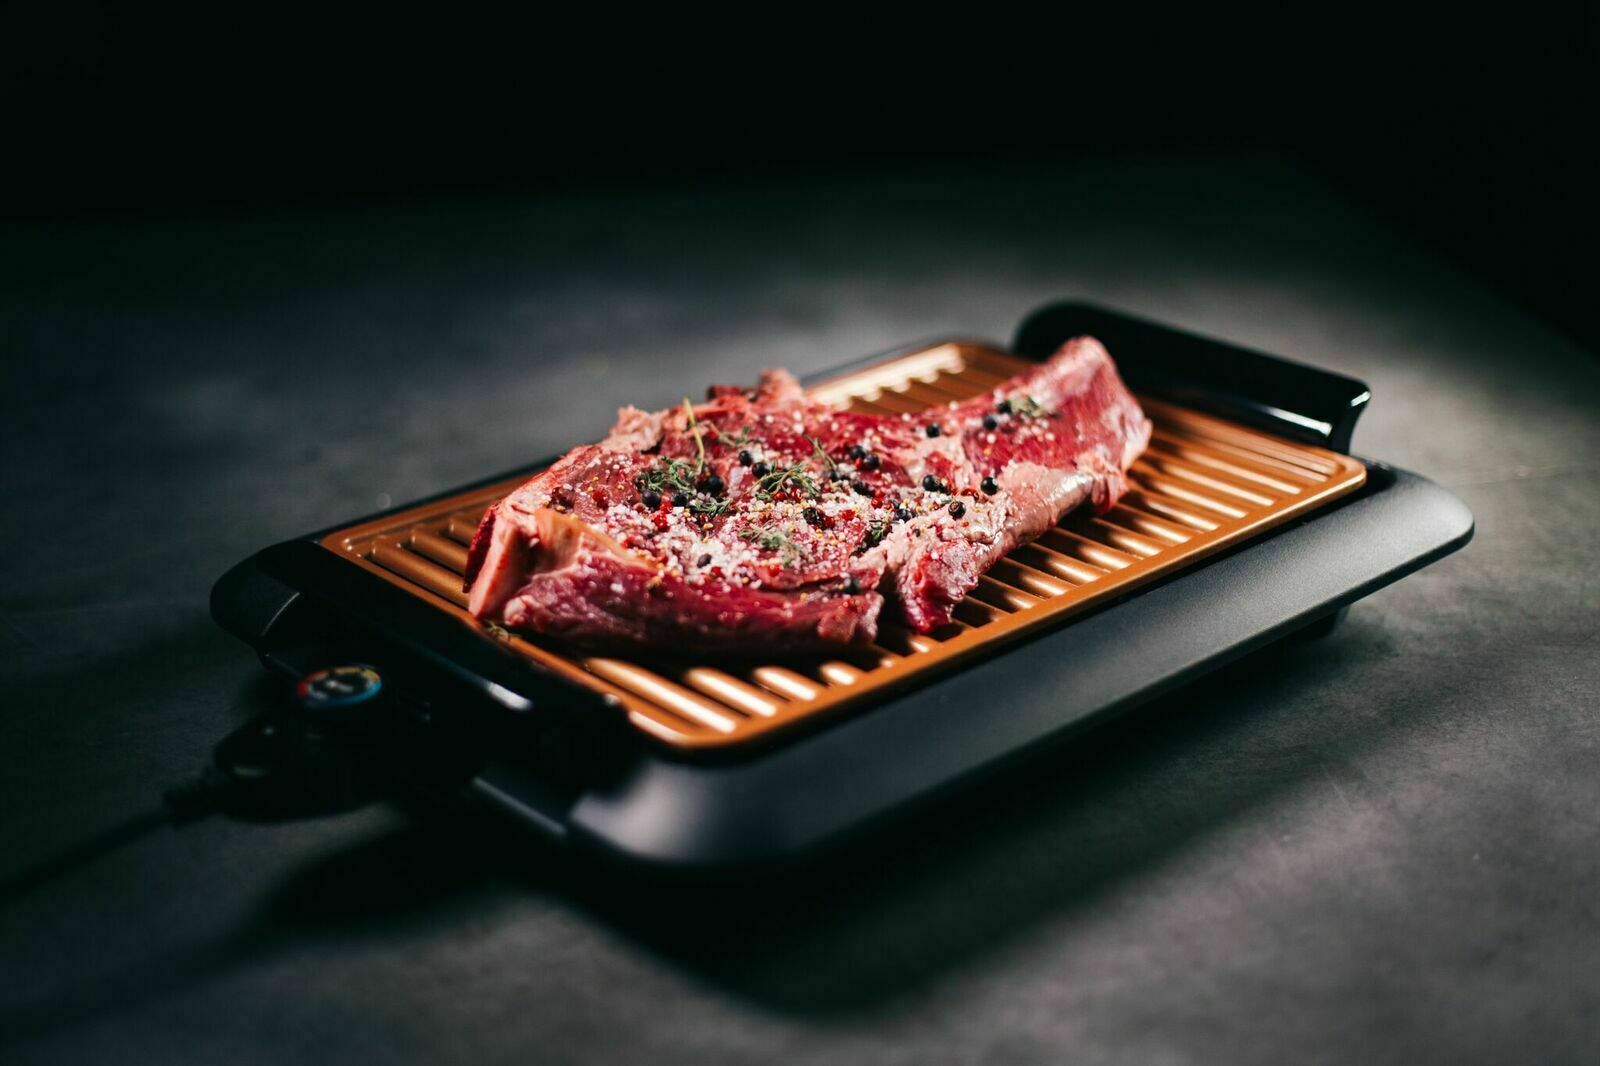 Gotham Steel Smokeless Electric Grill with Non-Stick Surface